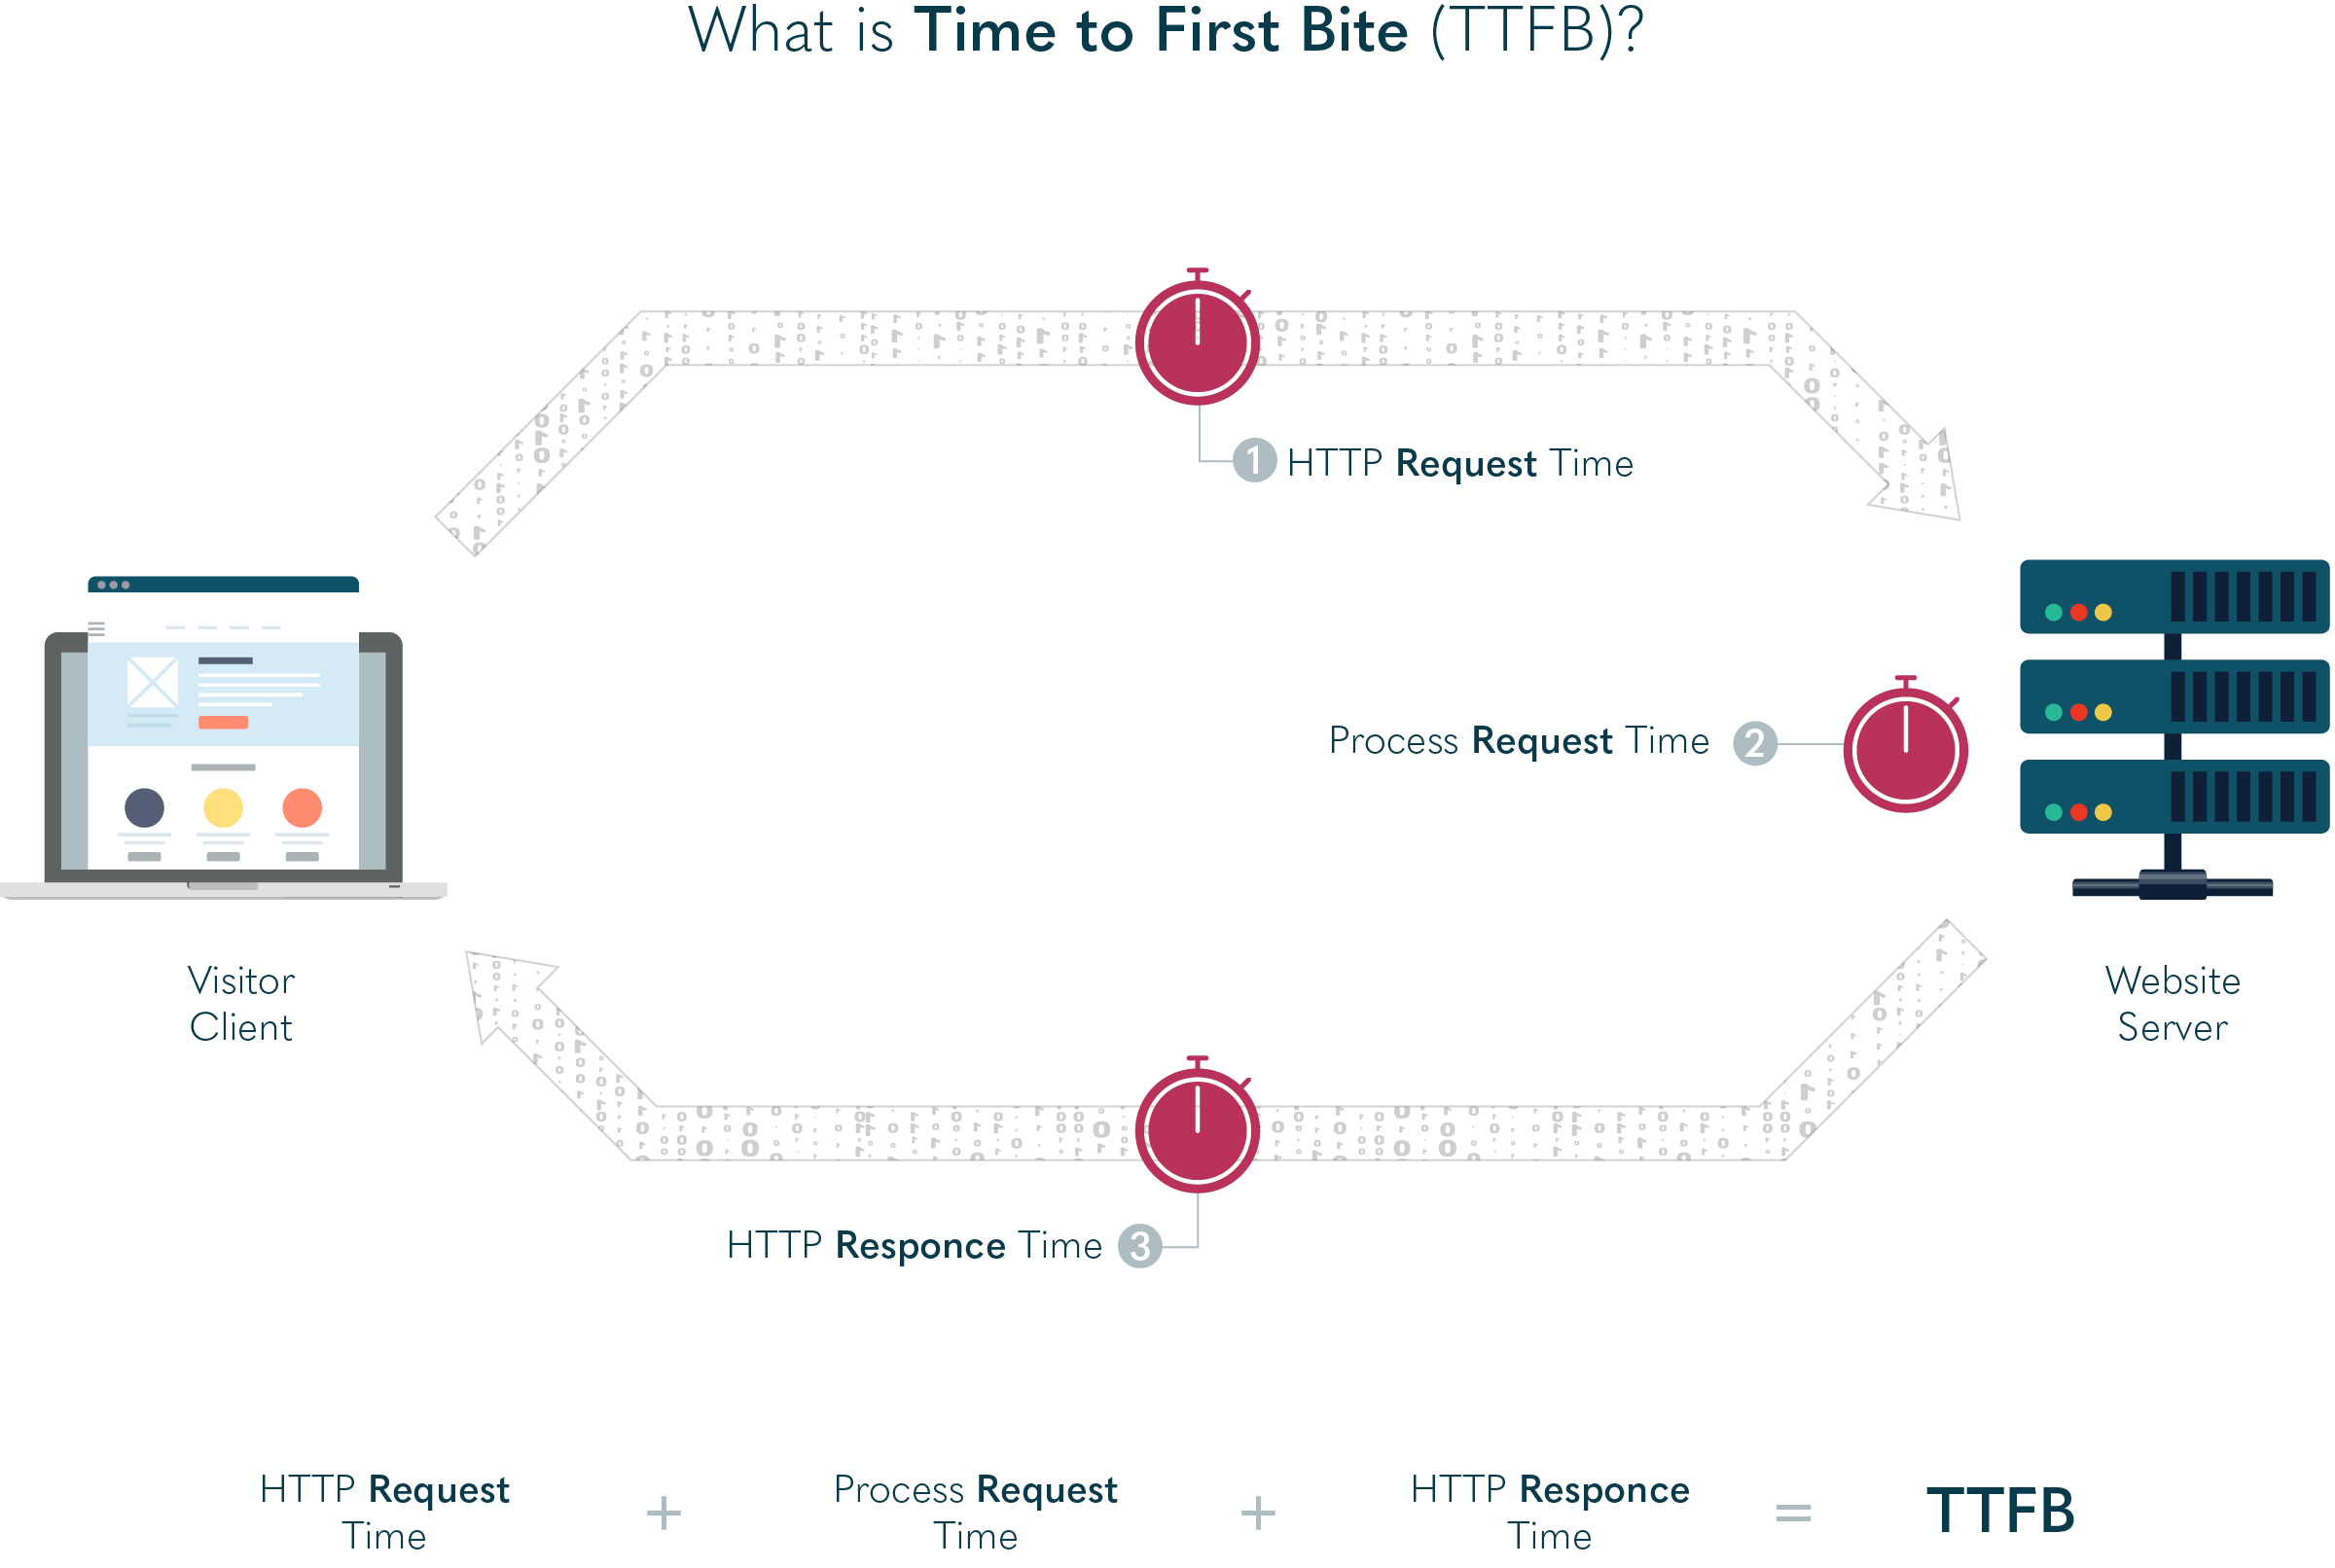 Infographic showing how time to first bite (TTFB) works.